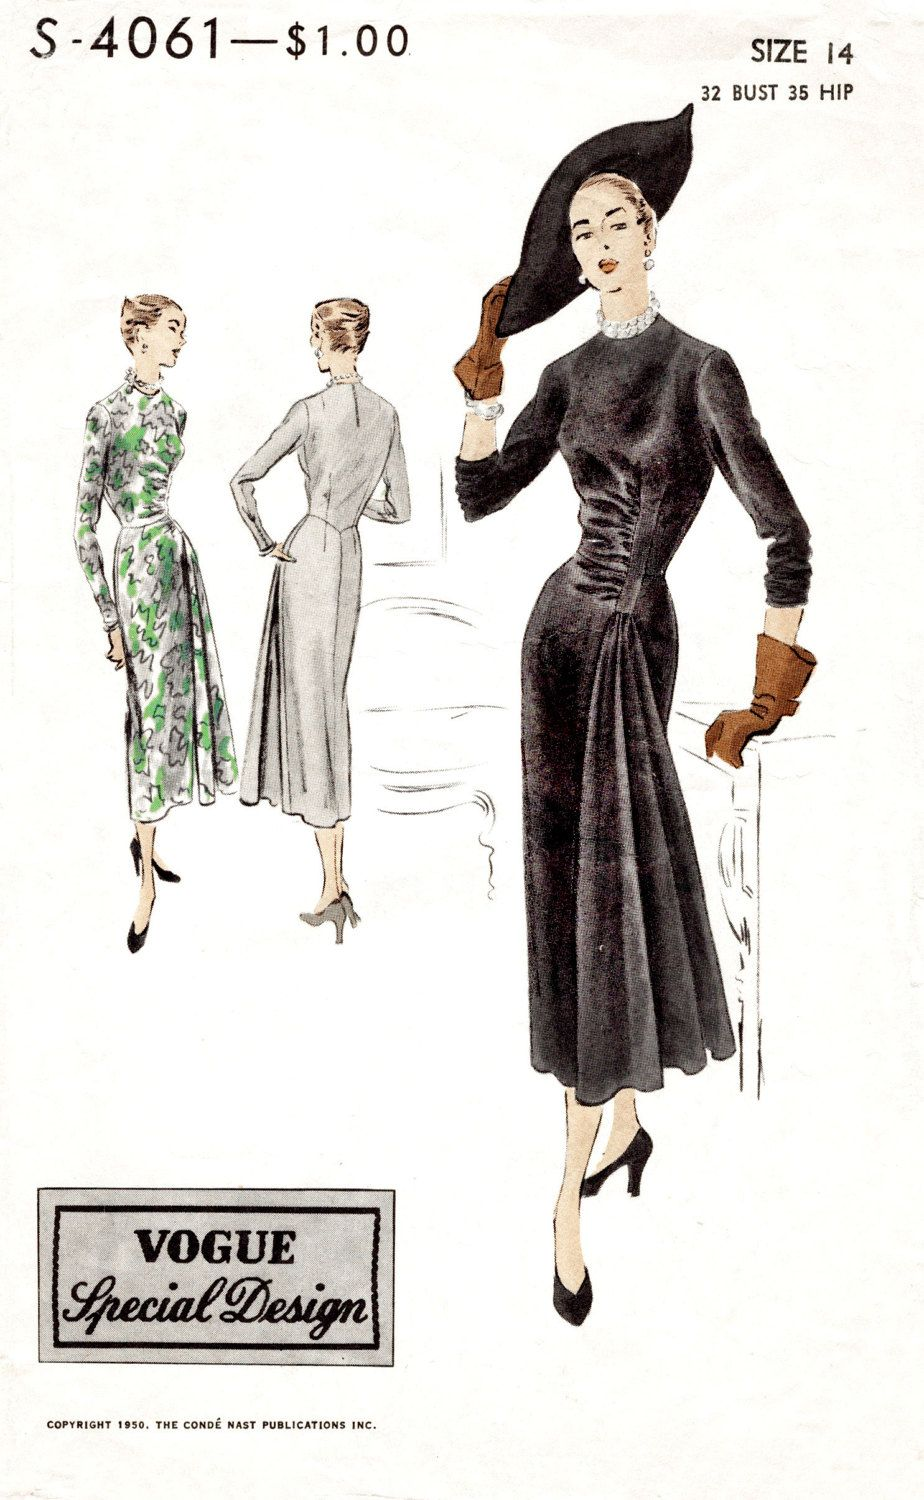 1940s 1950s dress vintage sewing pattern LBD cocktail frock cascade ...